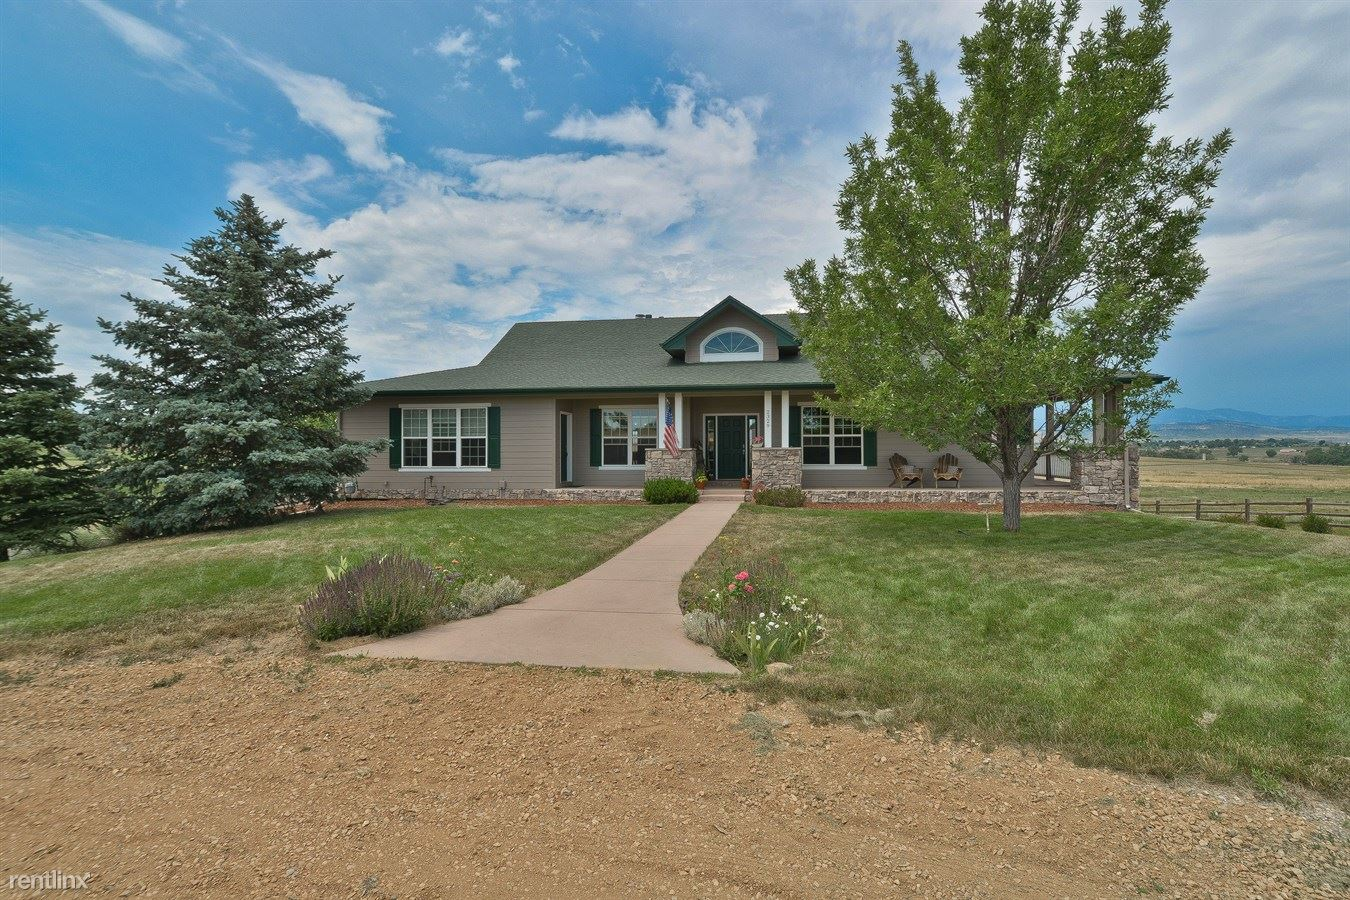 Custom built, sprawling ranch style home for rent on 35 acres with amazing views.